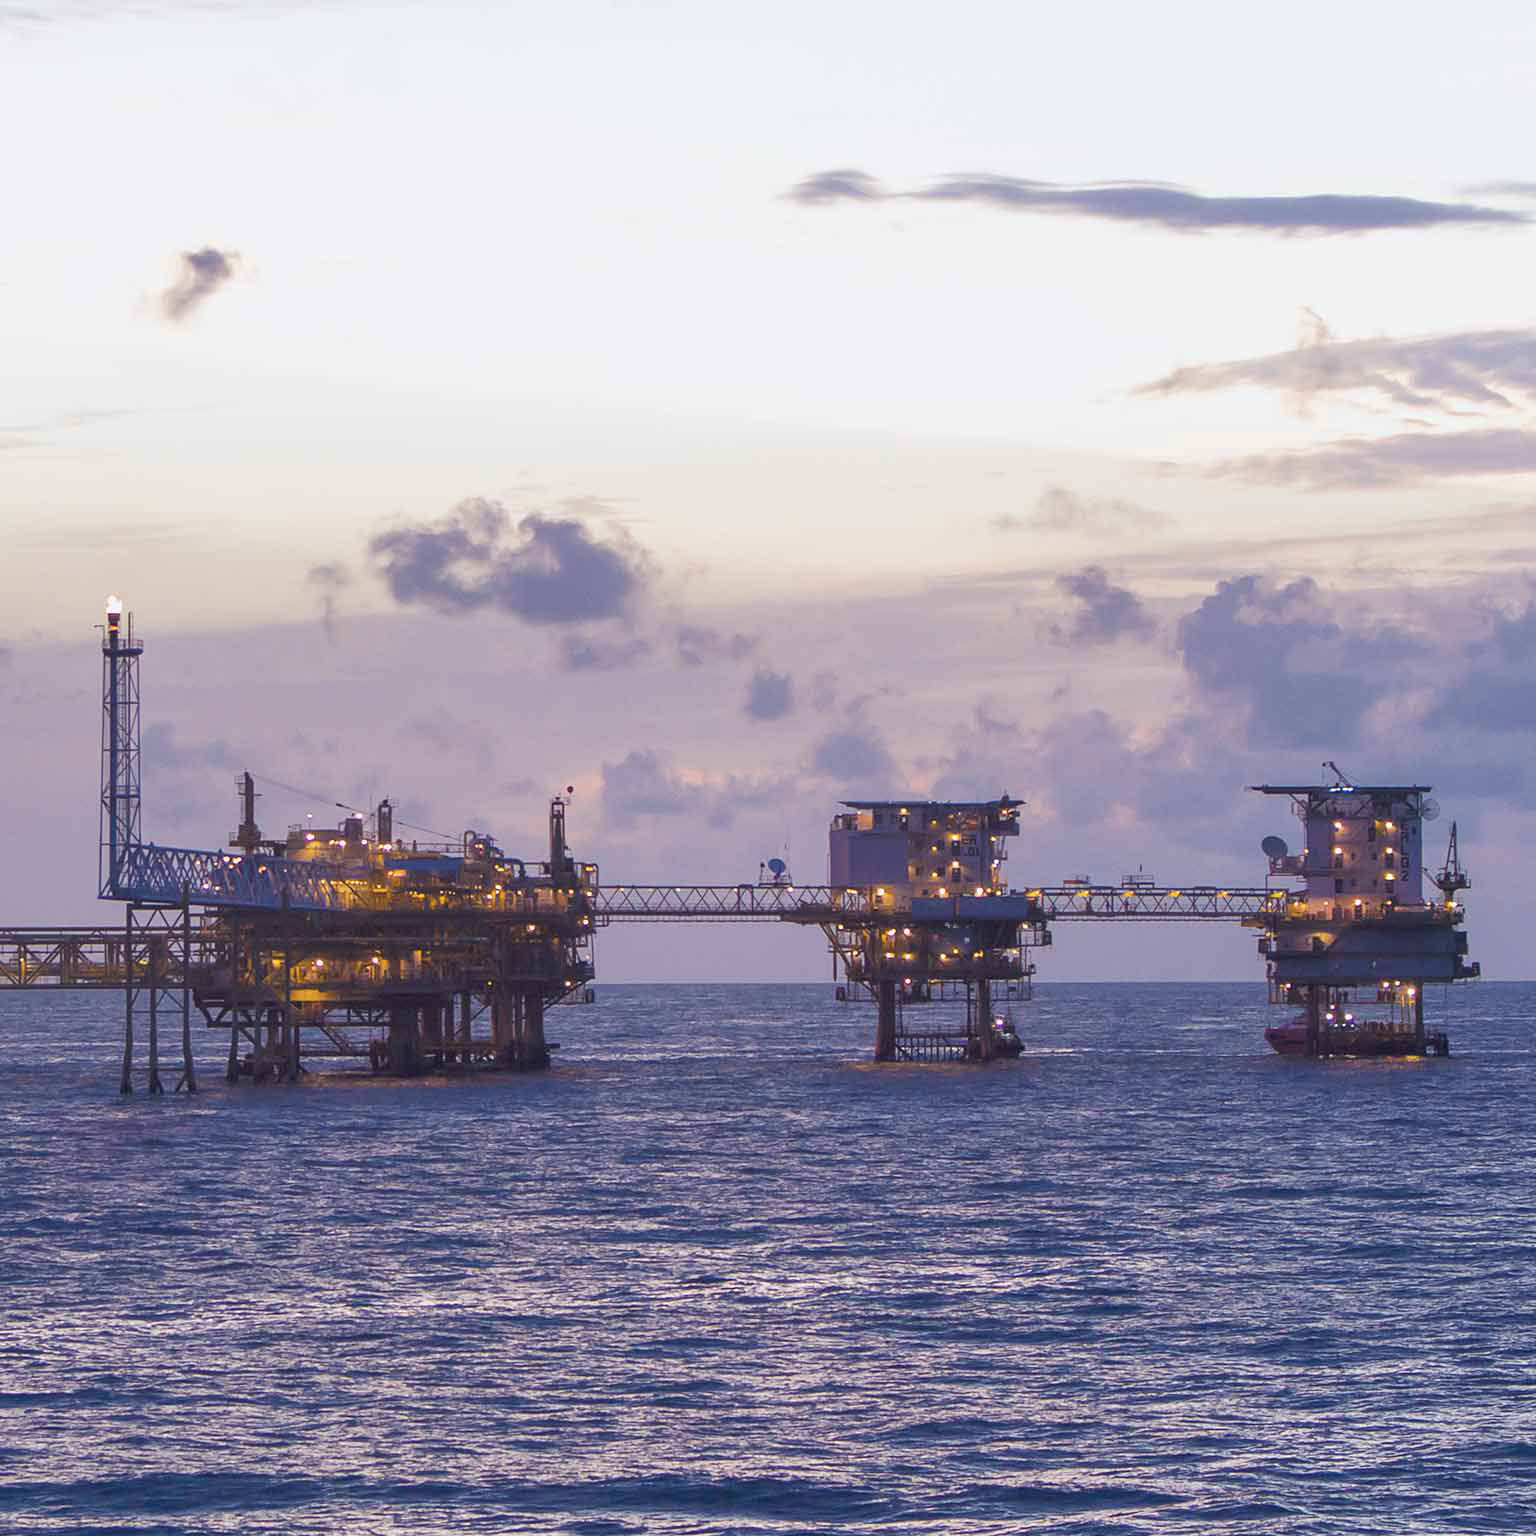 Offshore-drilling outlook to 2035 | McKinsey